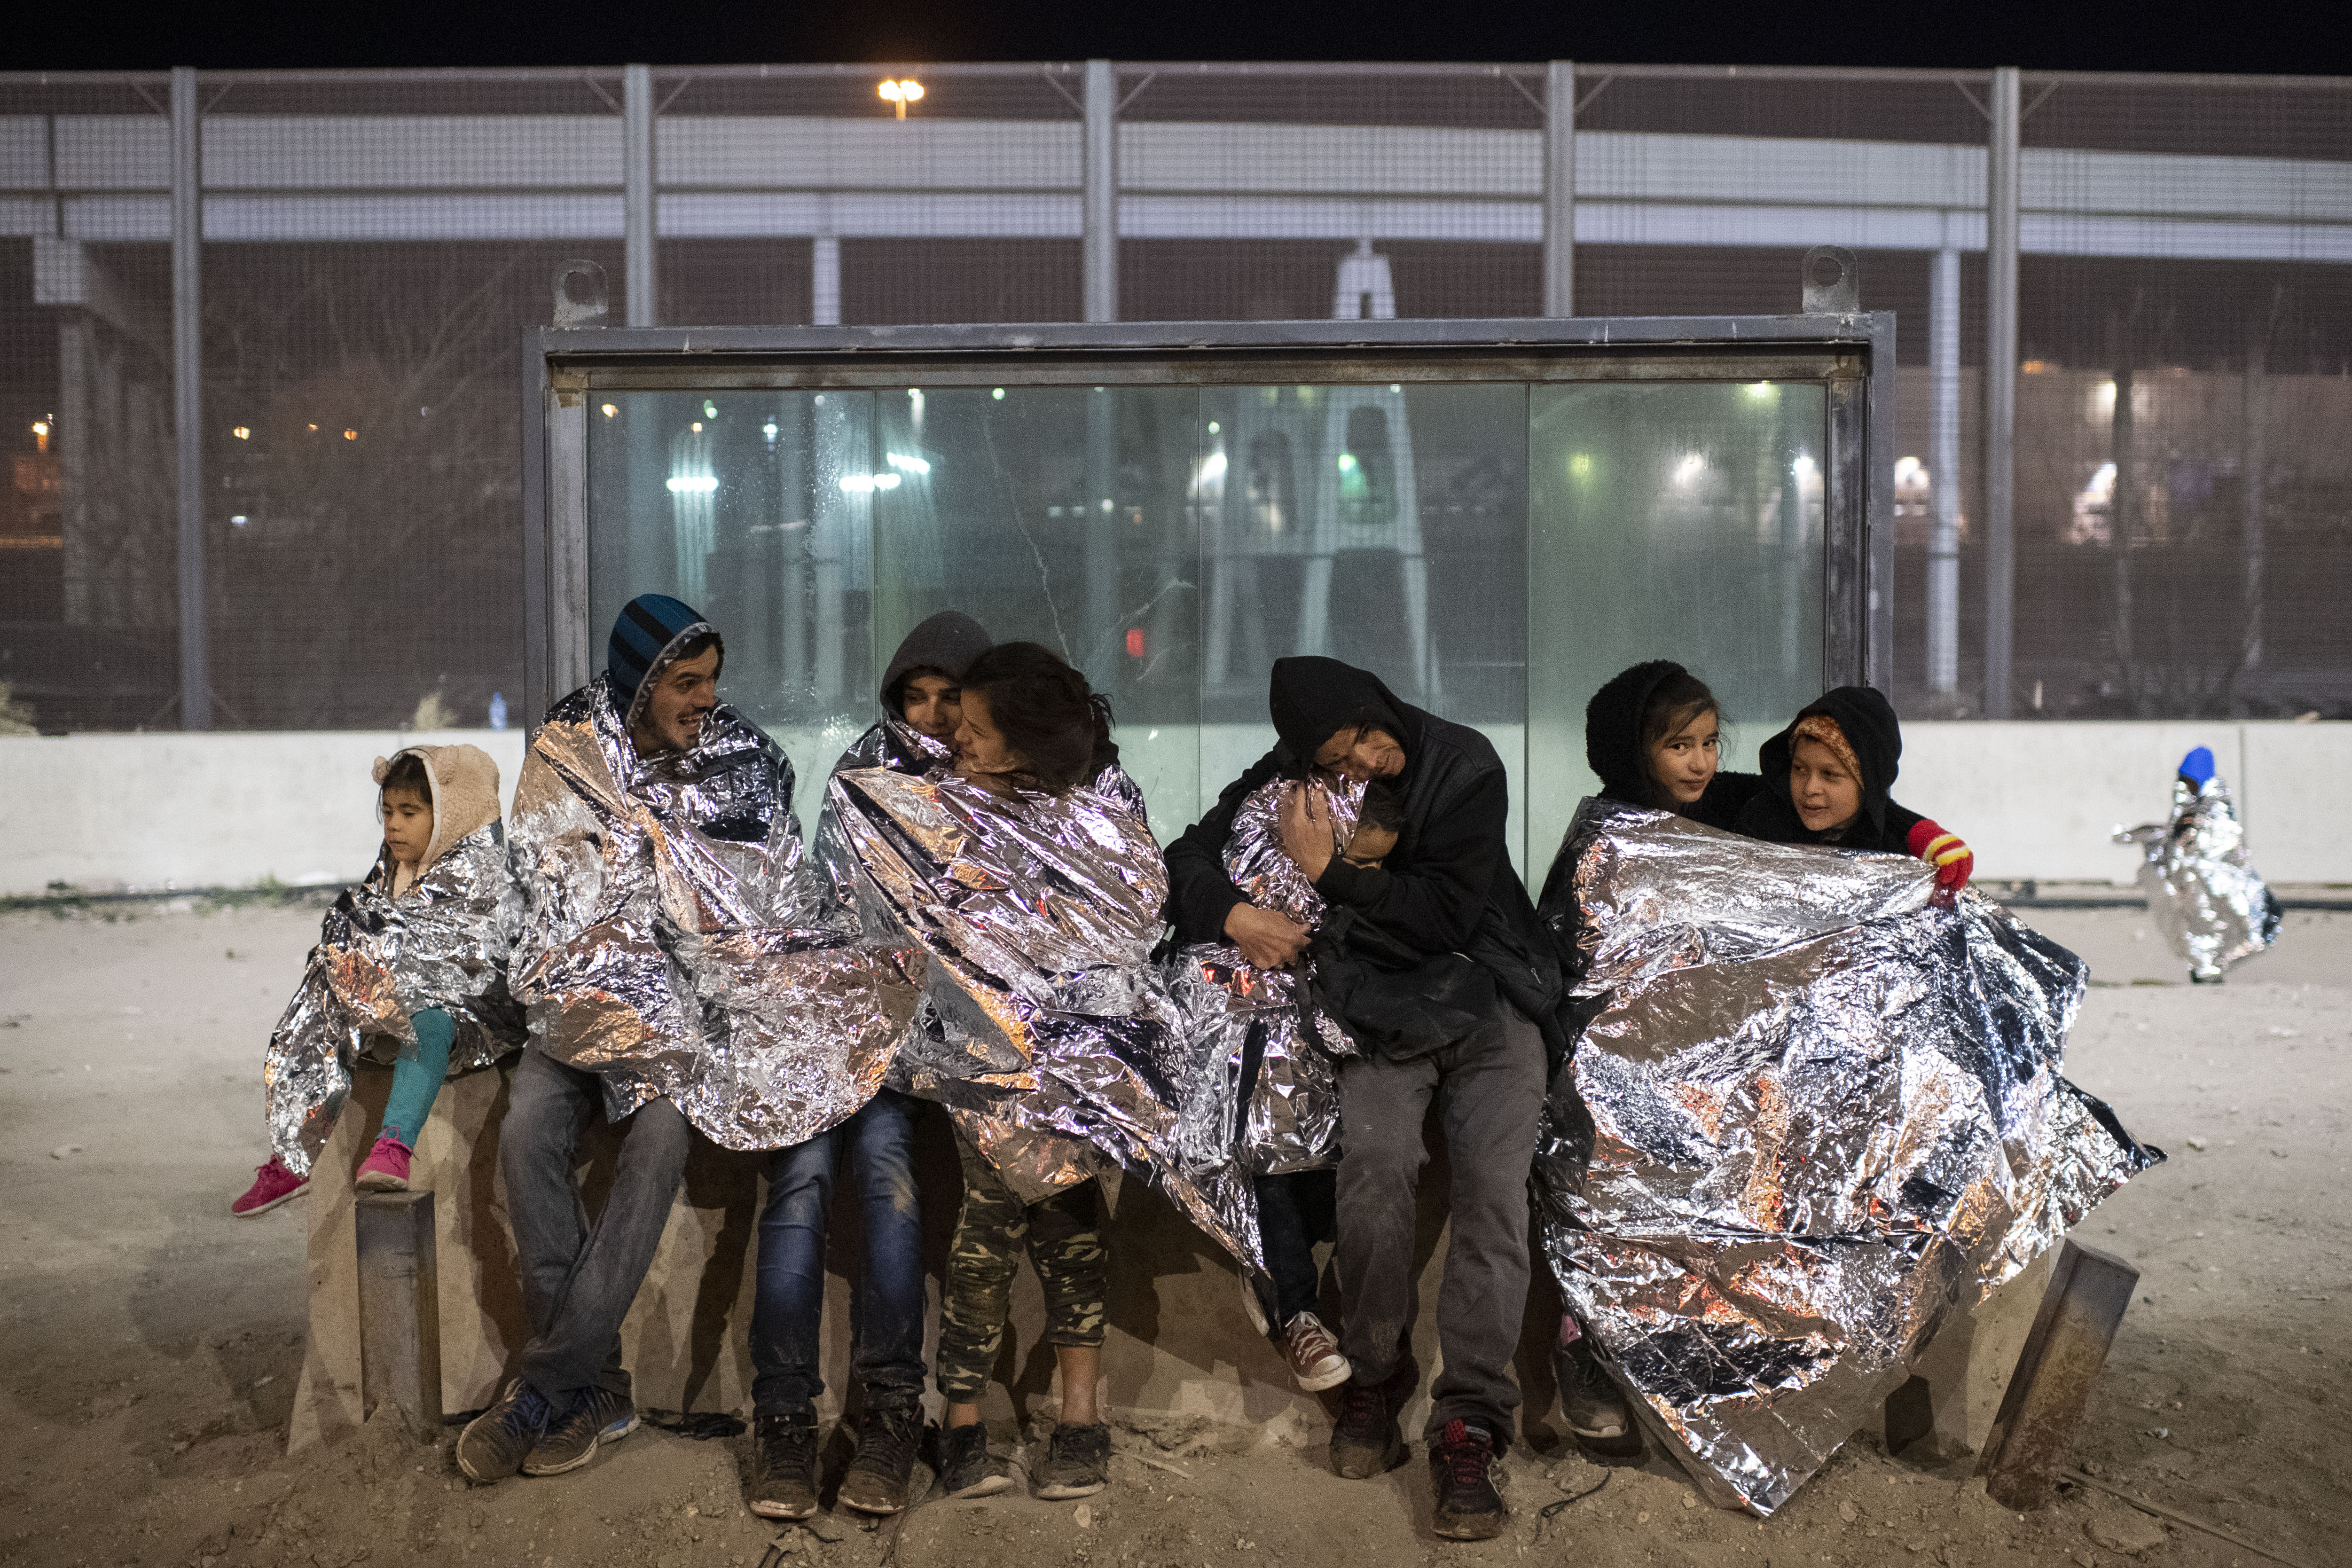 Central American migrants wrap themselves in Mylar blankets, which were distributed by Border Patrol agents, to brace against the near-freezing temperatures while they wait to be processed and transported to a holding facility in El Paso, on Feb. 22. The group of 64 migrants walked across the Rio Grande and presented themselves to Border Patrol agents.